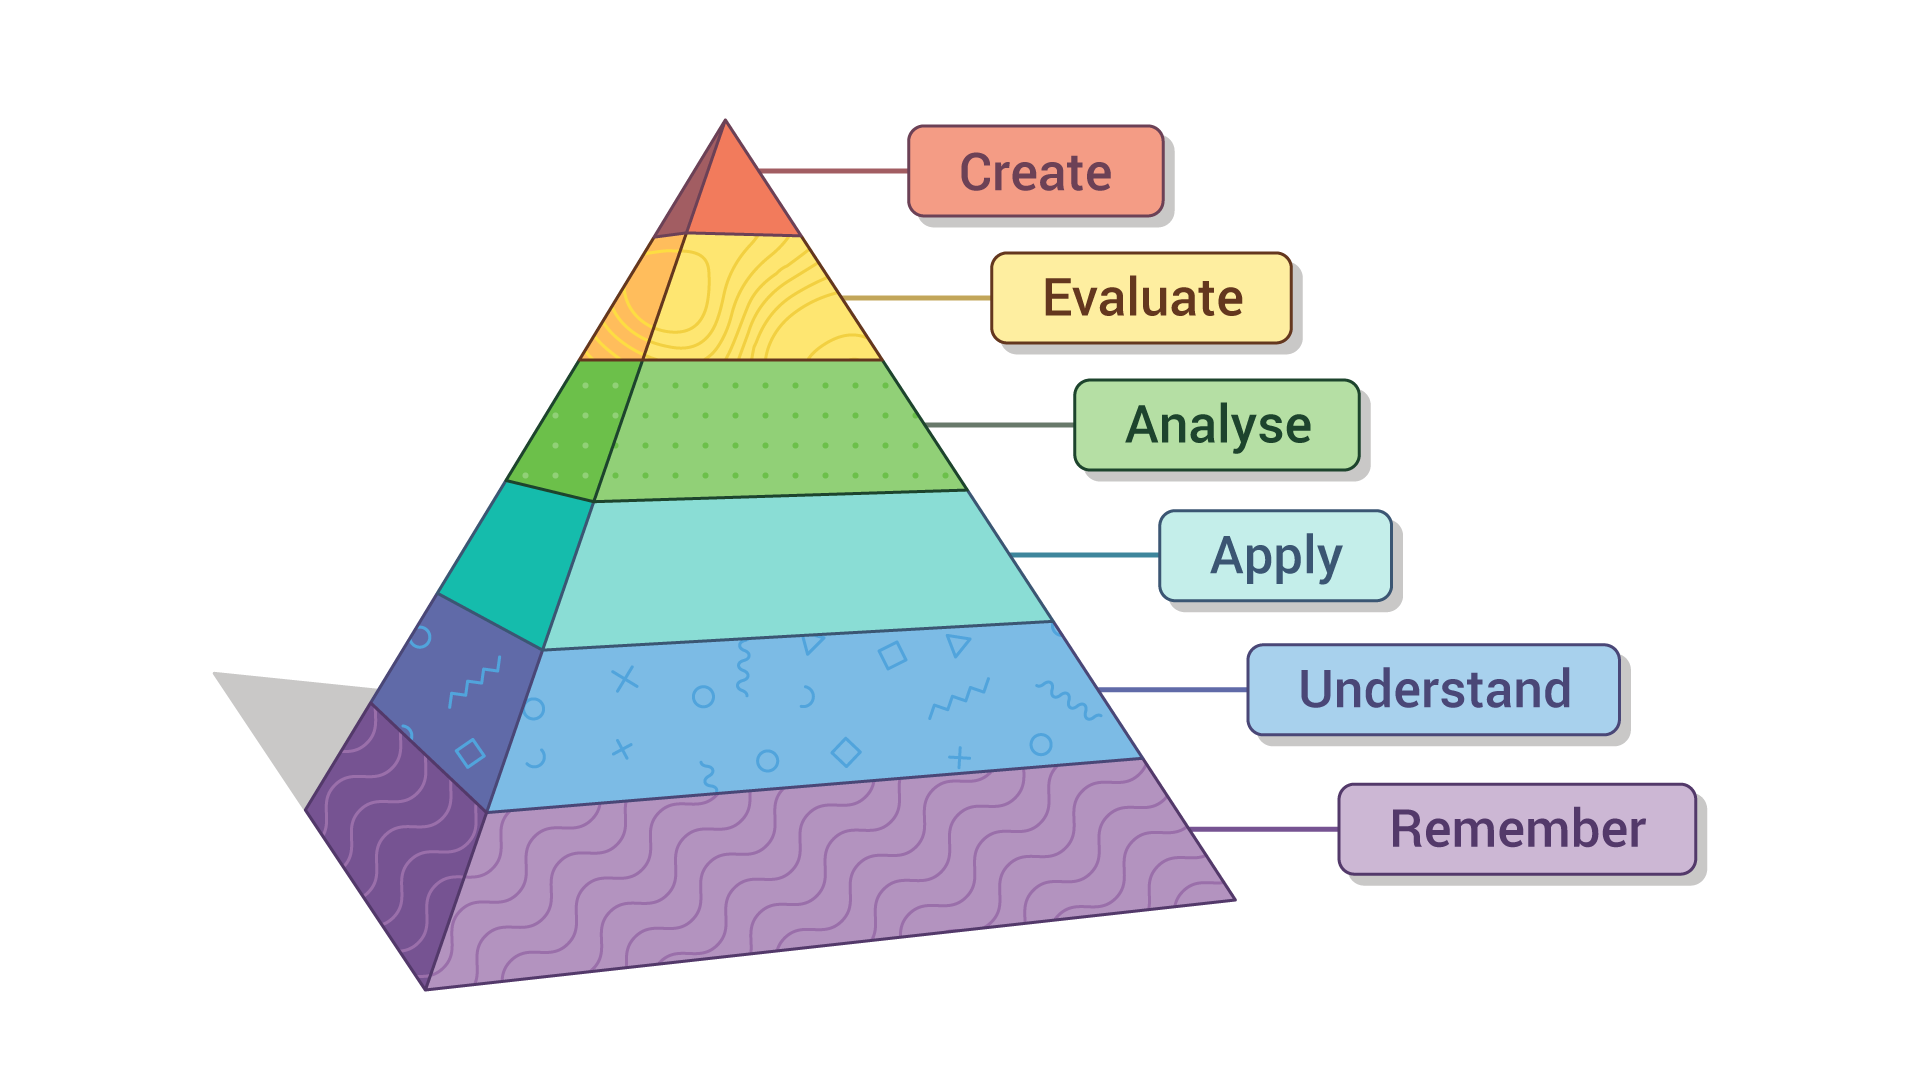 Pyramid consisting of six layers, labelled from top to bottom as create, evaluate, analyse, apply, understand & remember